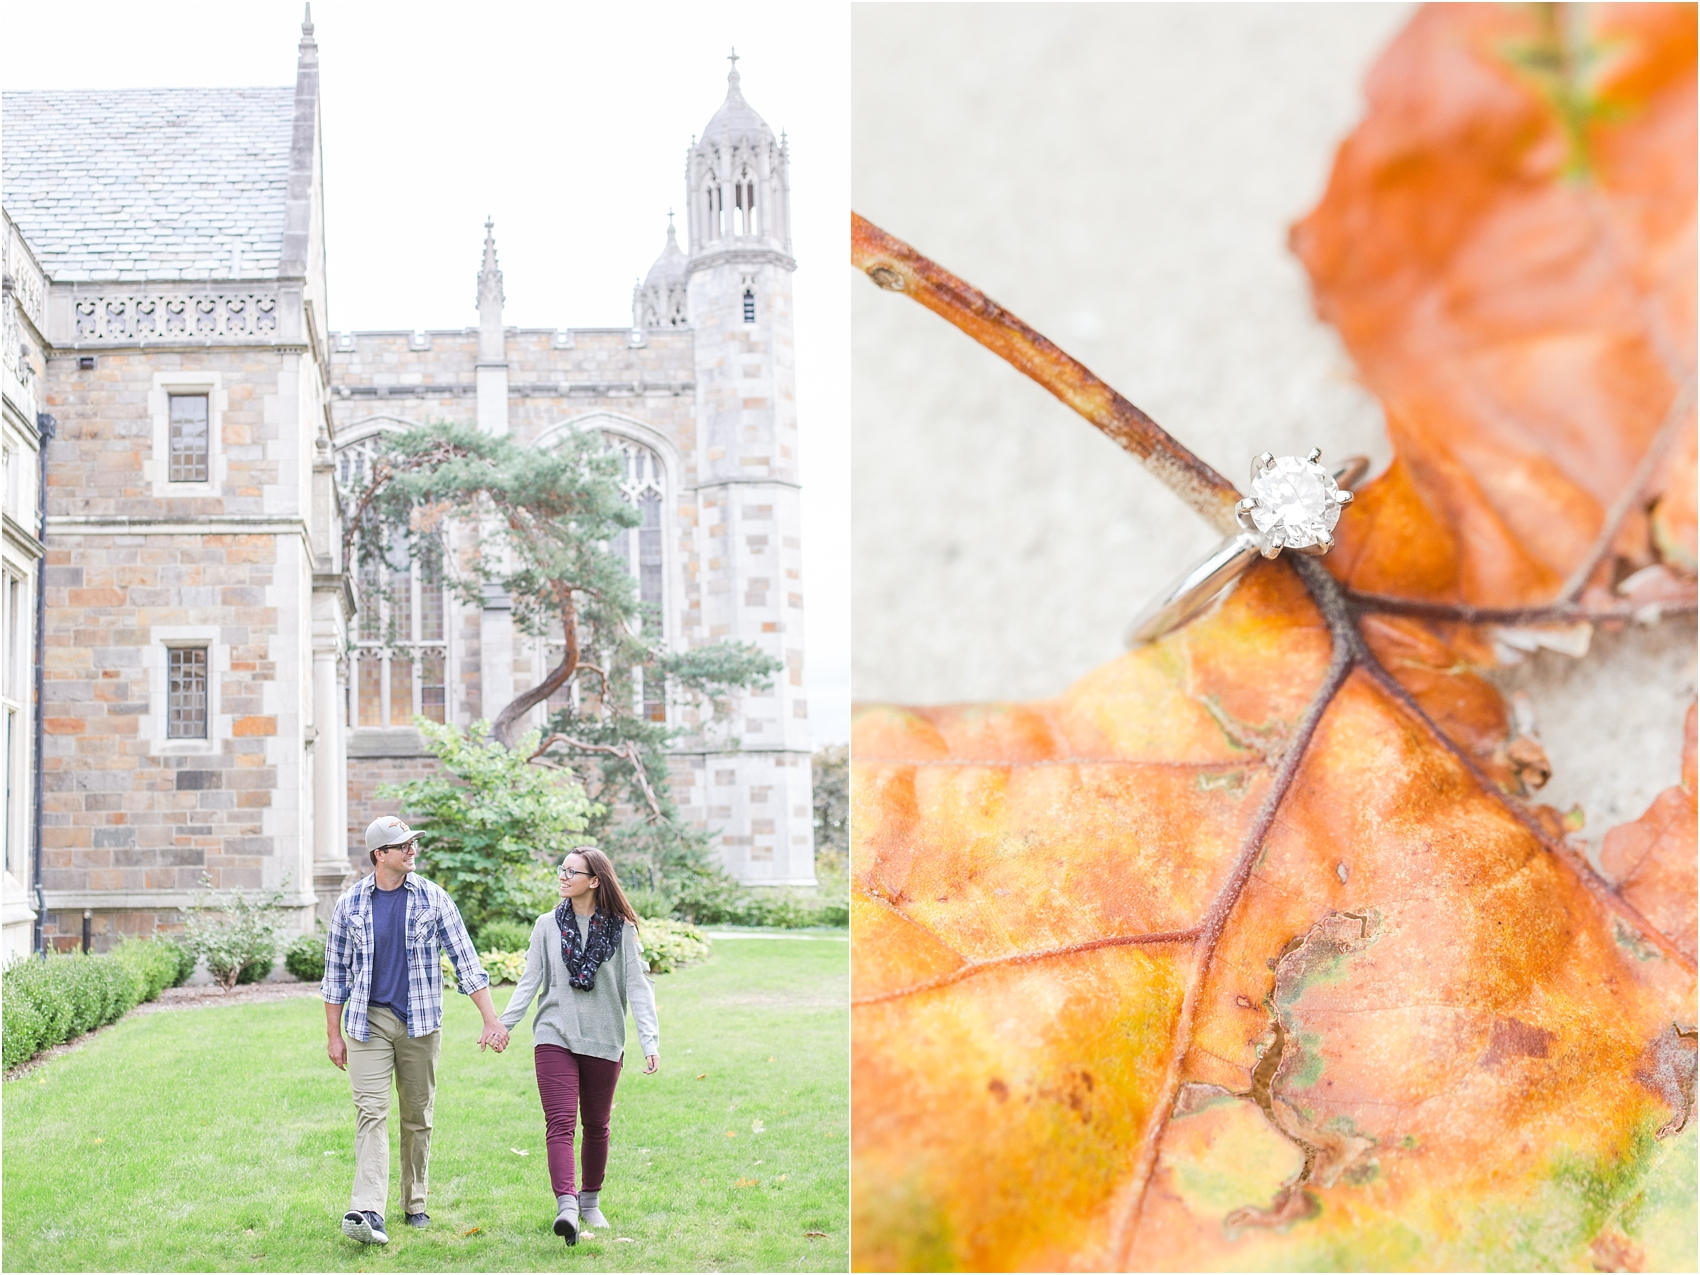 classic-fall-engagement-photos-at-the-university-of-michigan-in-ann-arbor-mi-by-courtney-carolyn-photography_0010.jpg